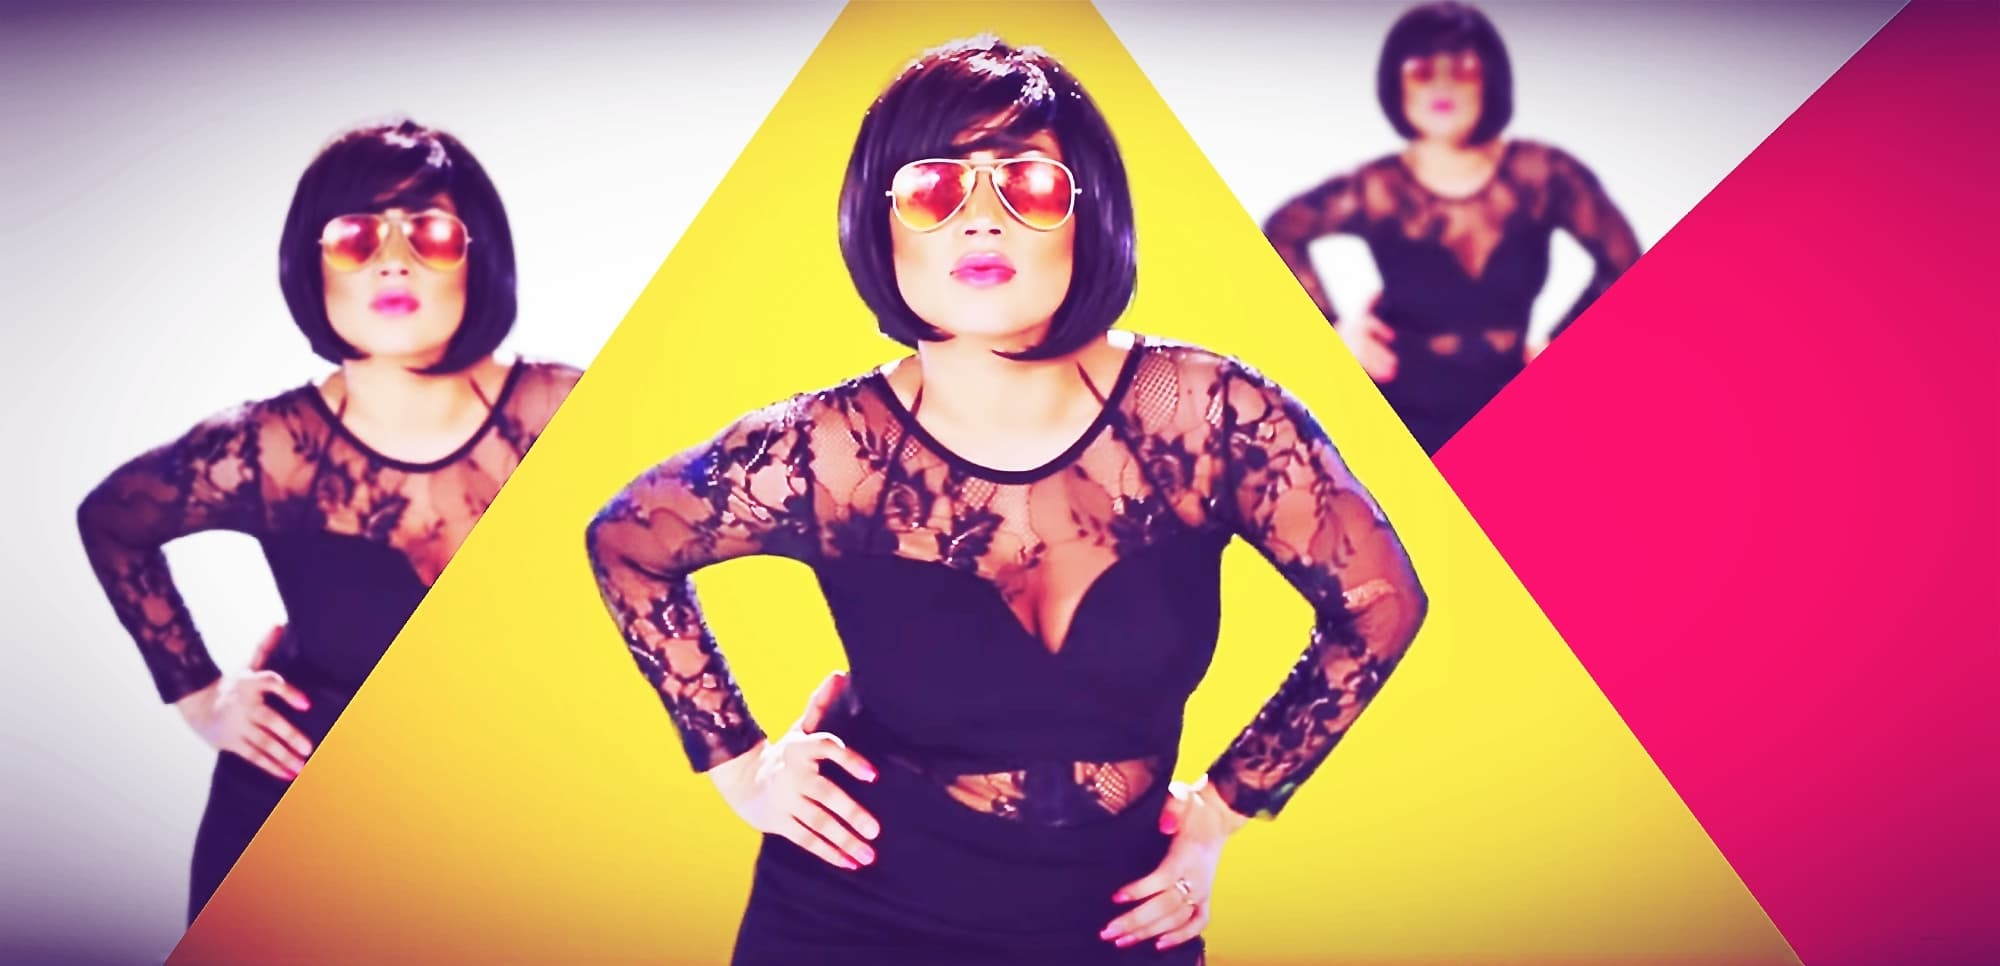 »:The Sensational Life and Death of Qandeel Baloch by